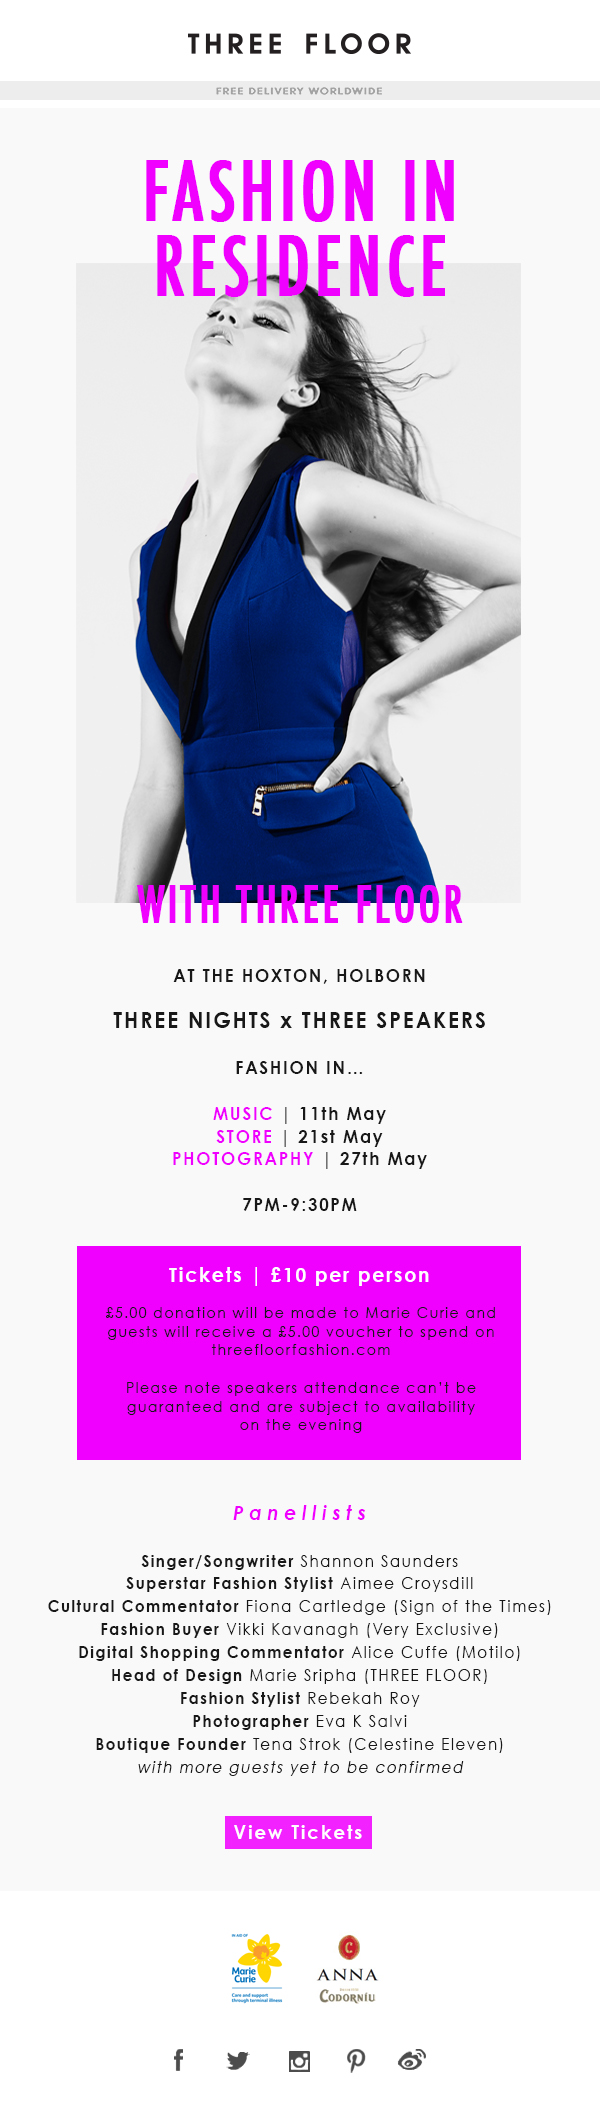 Fashion In Residence at The Hoxton, Holborn